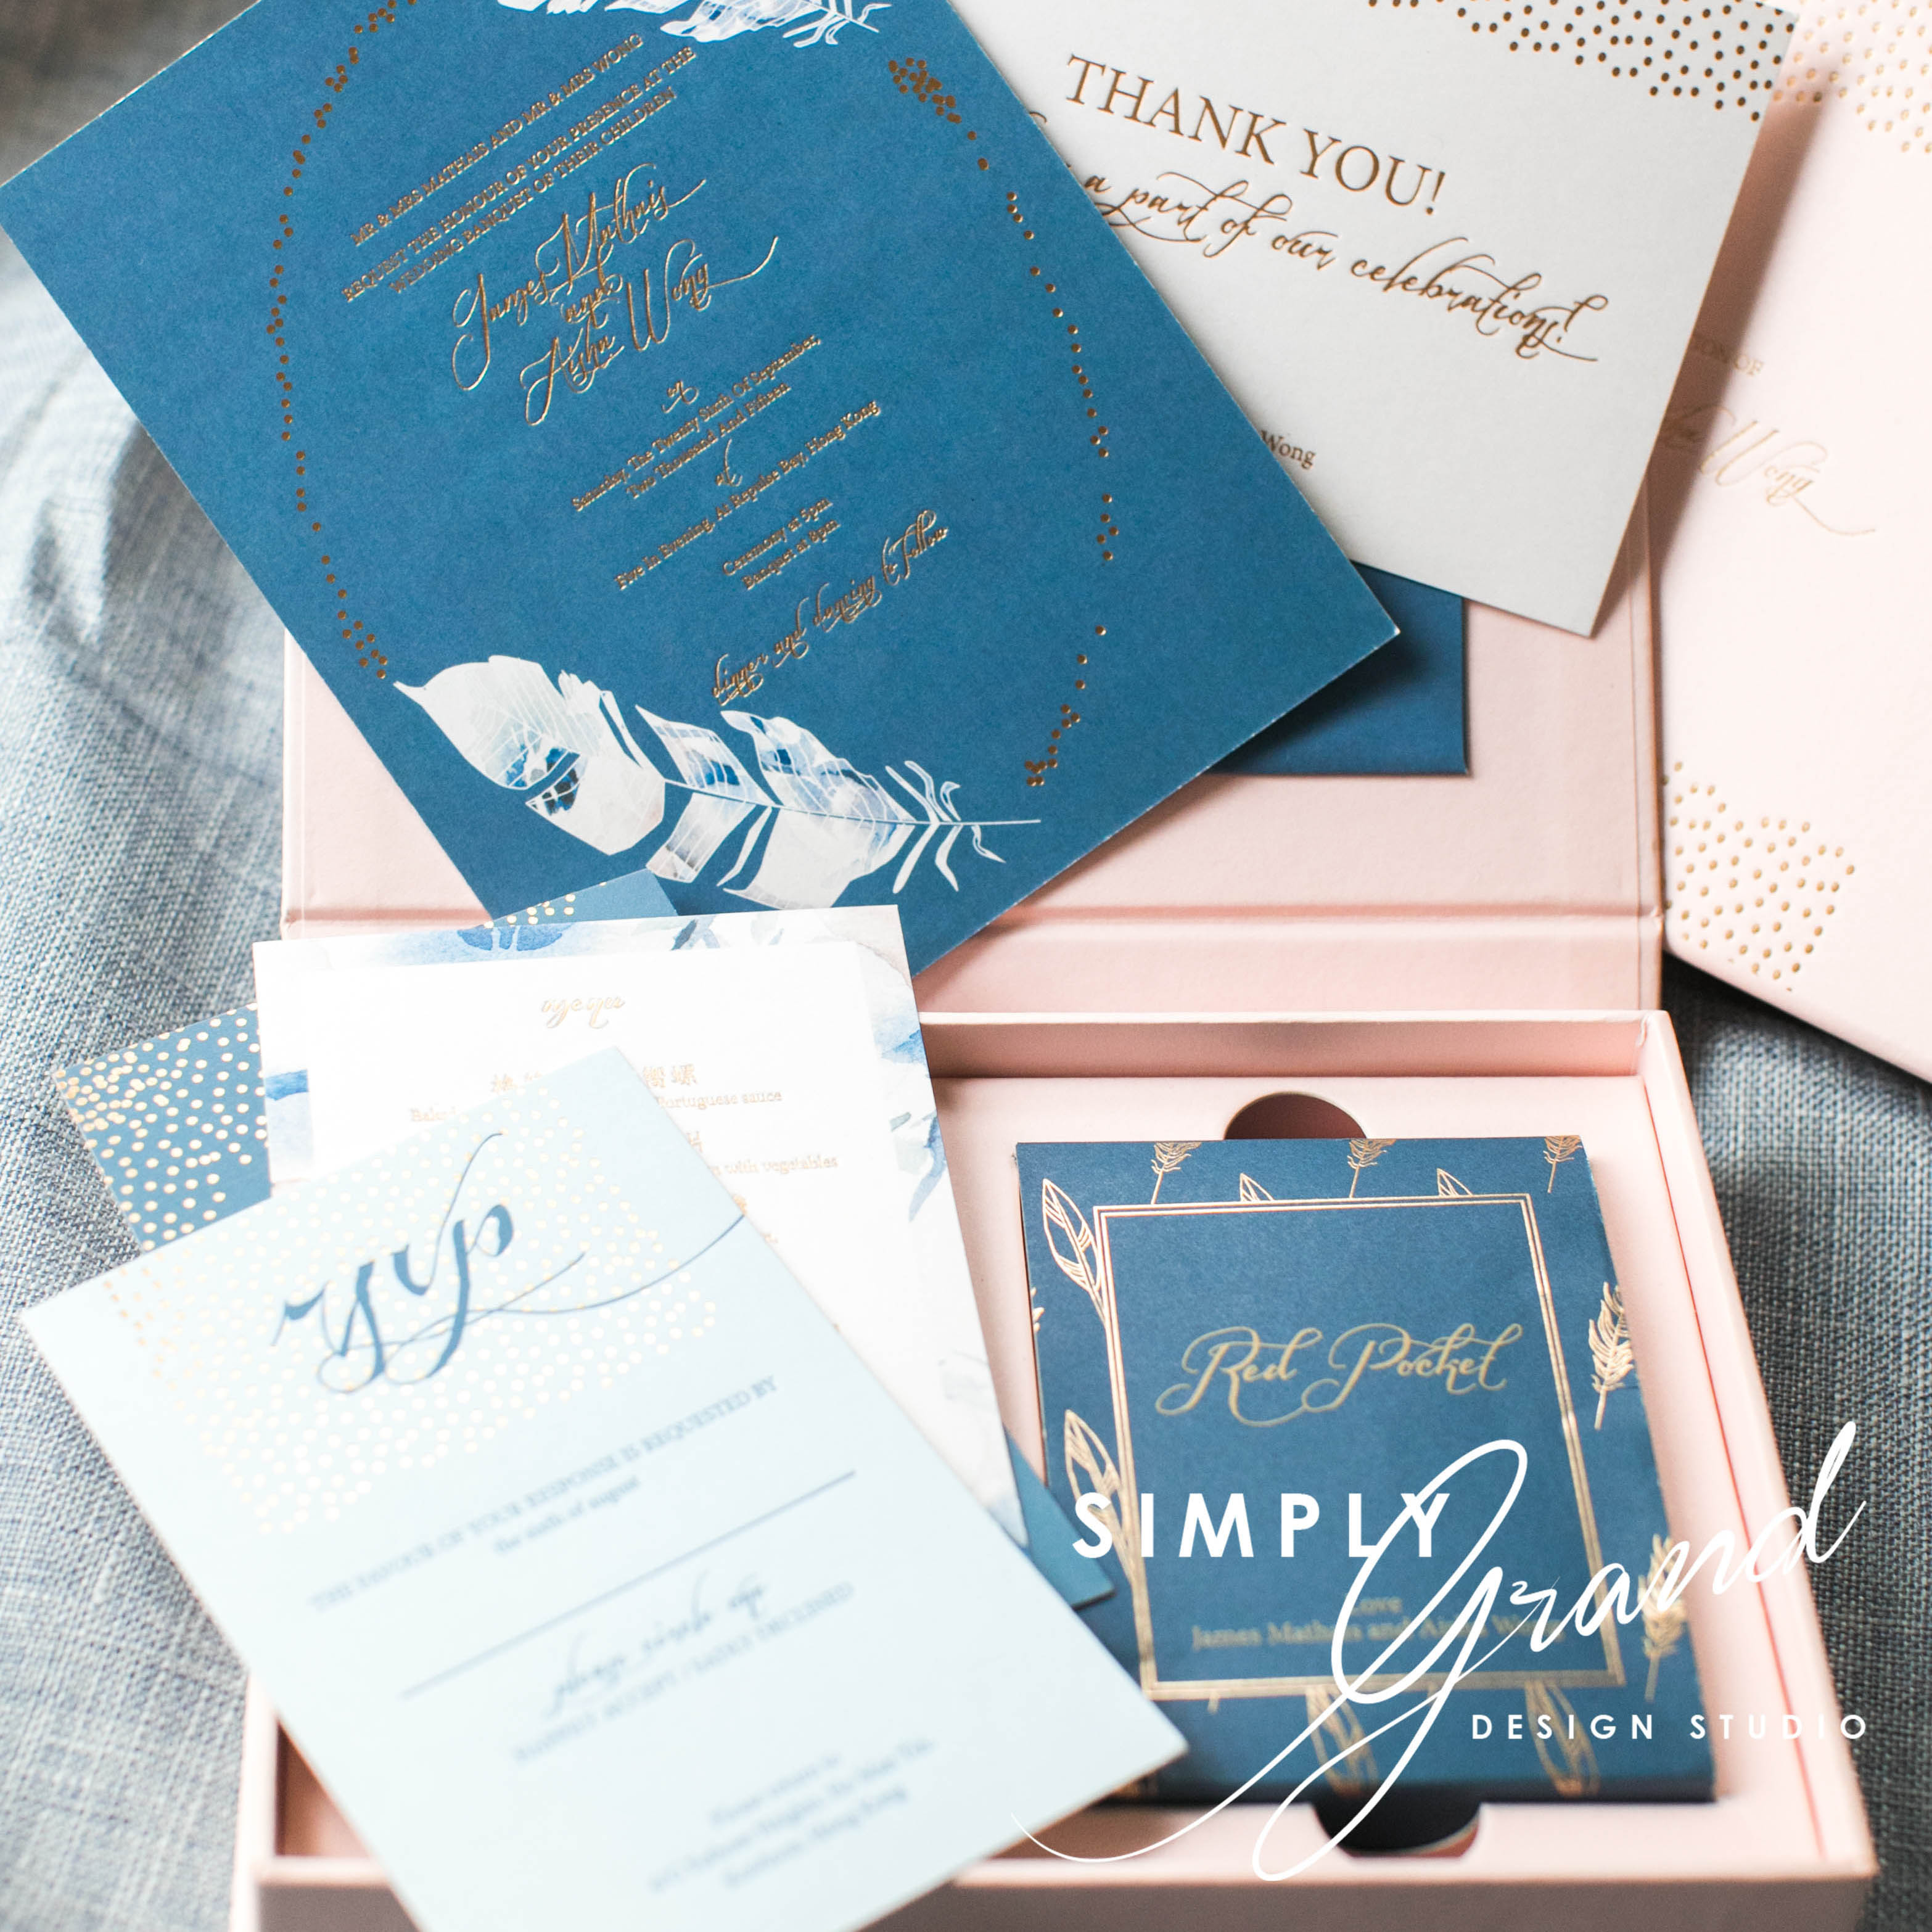 Simply_Grand_Production_Stationery_Invitation_Card_1_2